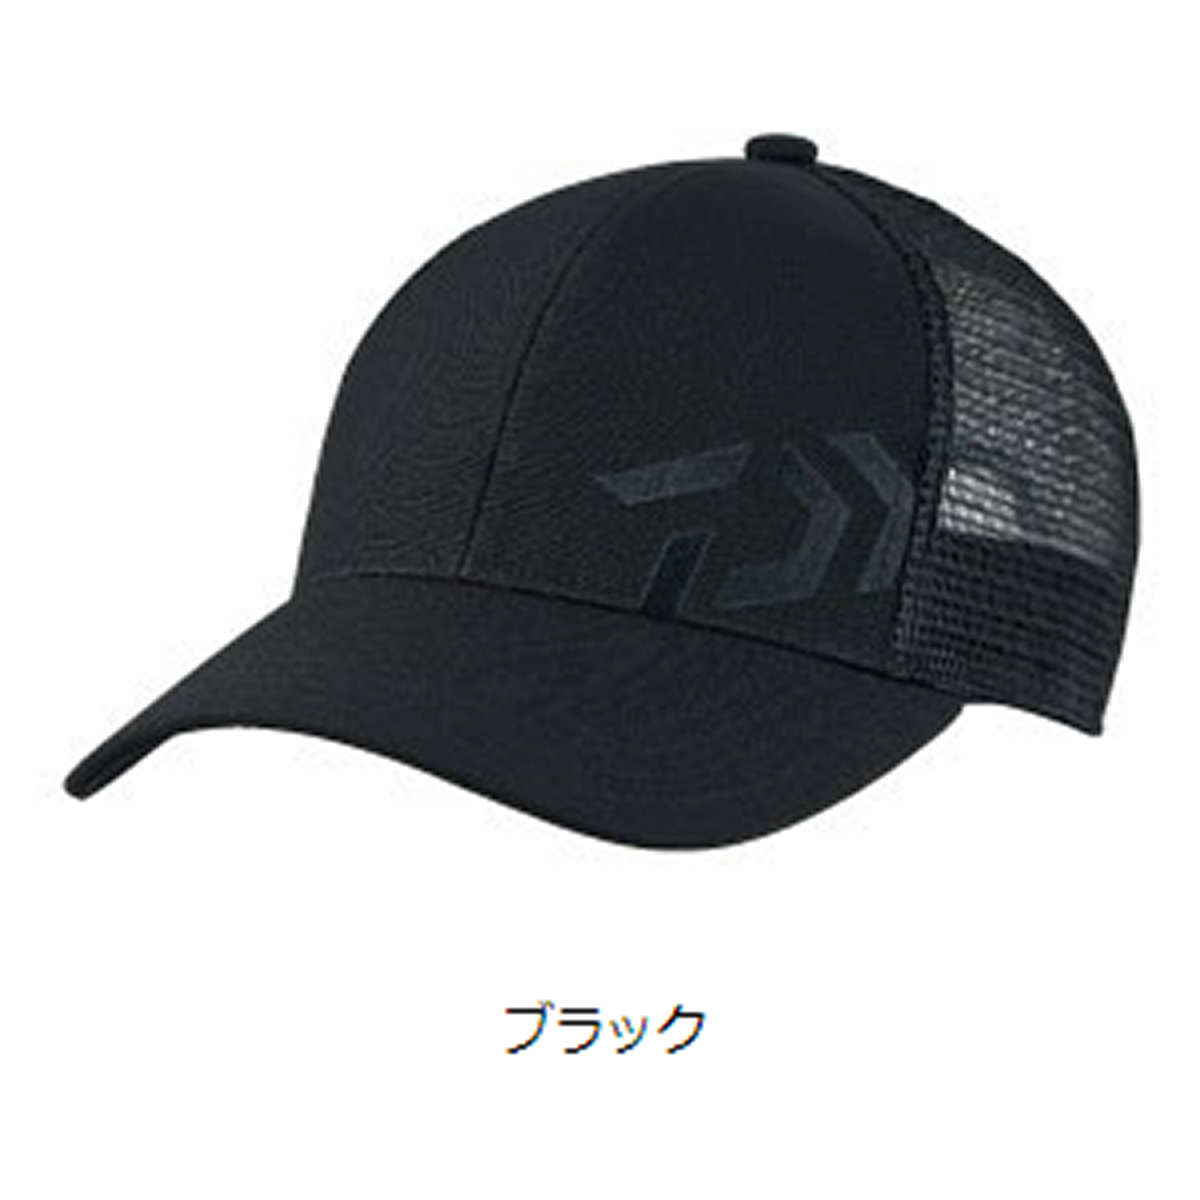 66fba6ebef491 Daiwa hand and foot gesture of kabuki actor while exiting or entering the  stage type half mesh cap DC-66008-free black